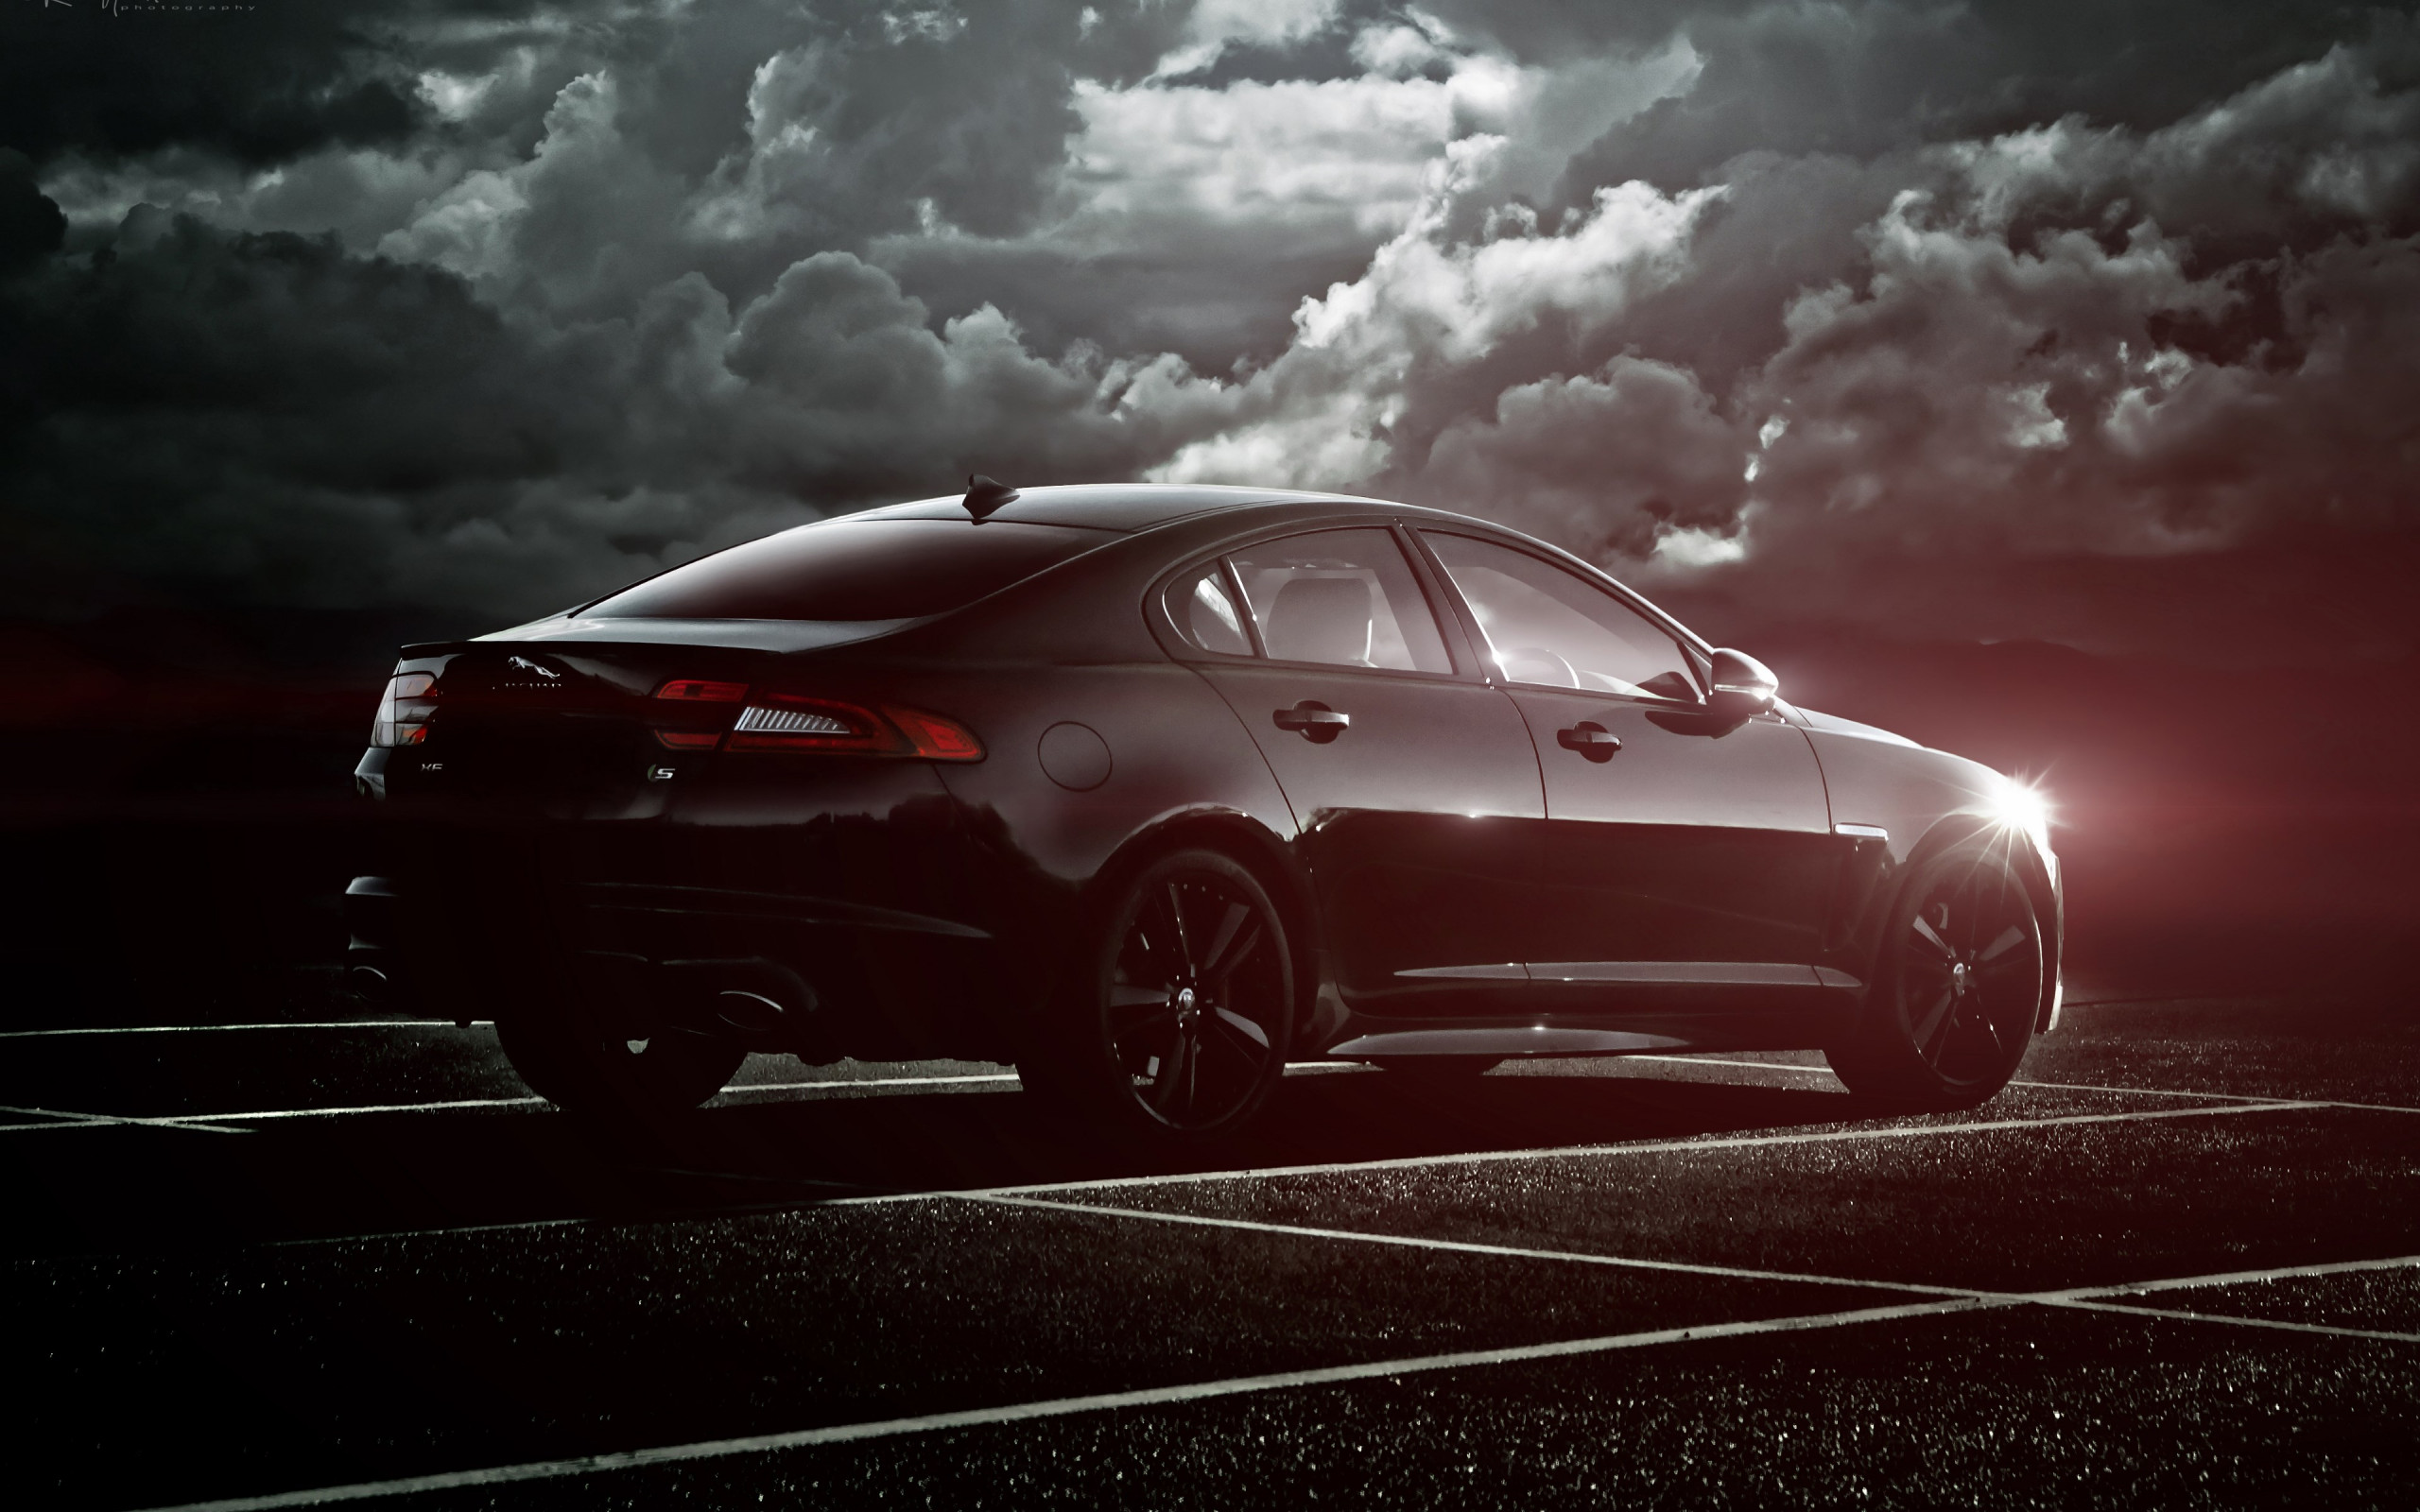 Jaguar XF S wallpaper 2560x1600